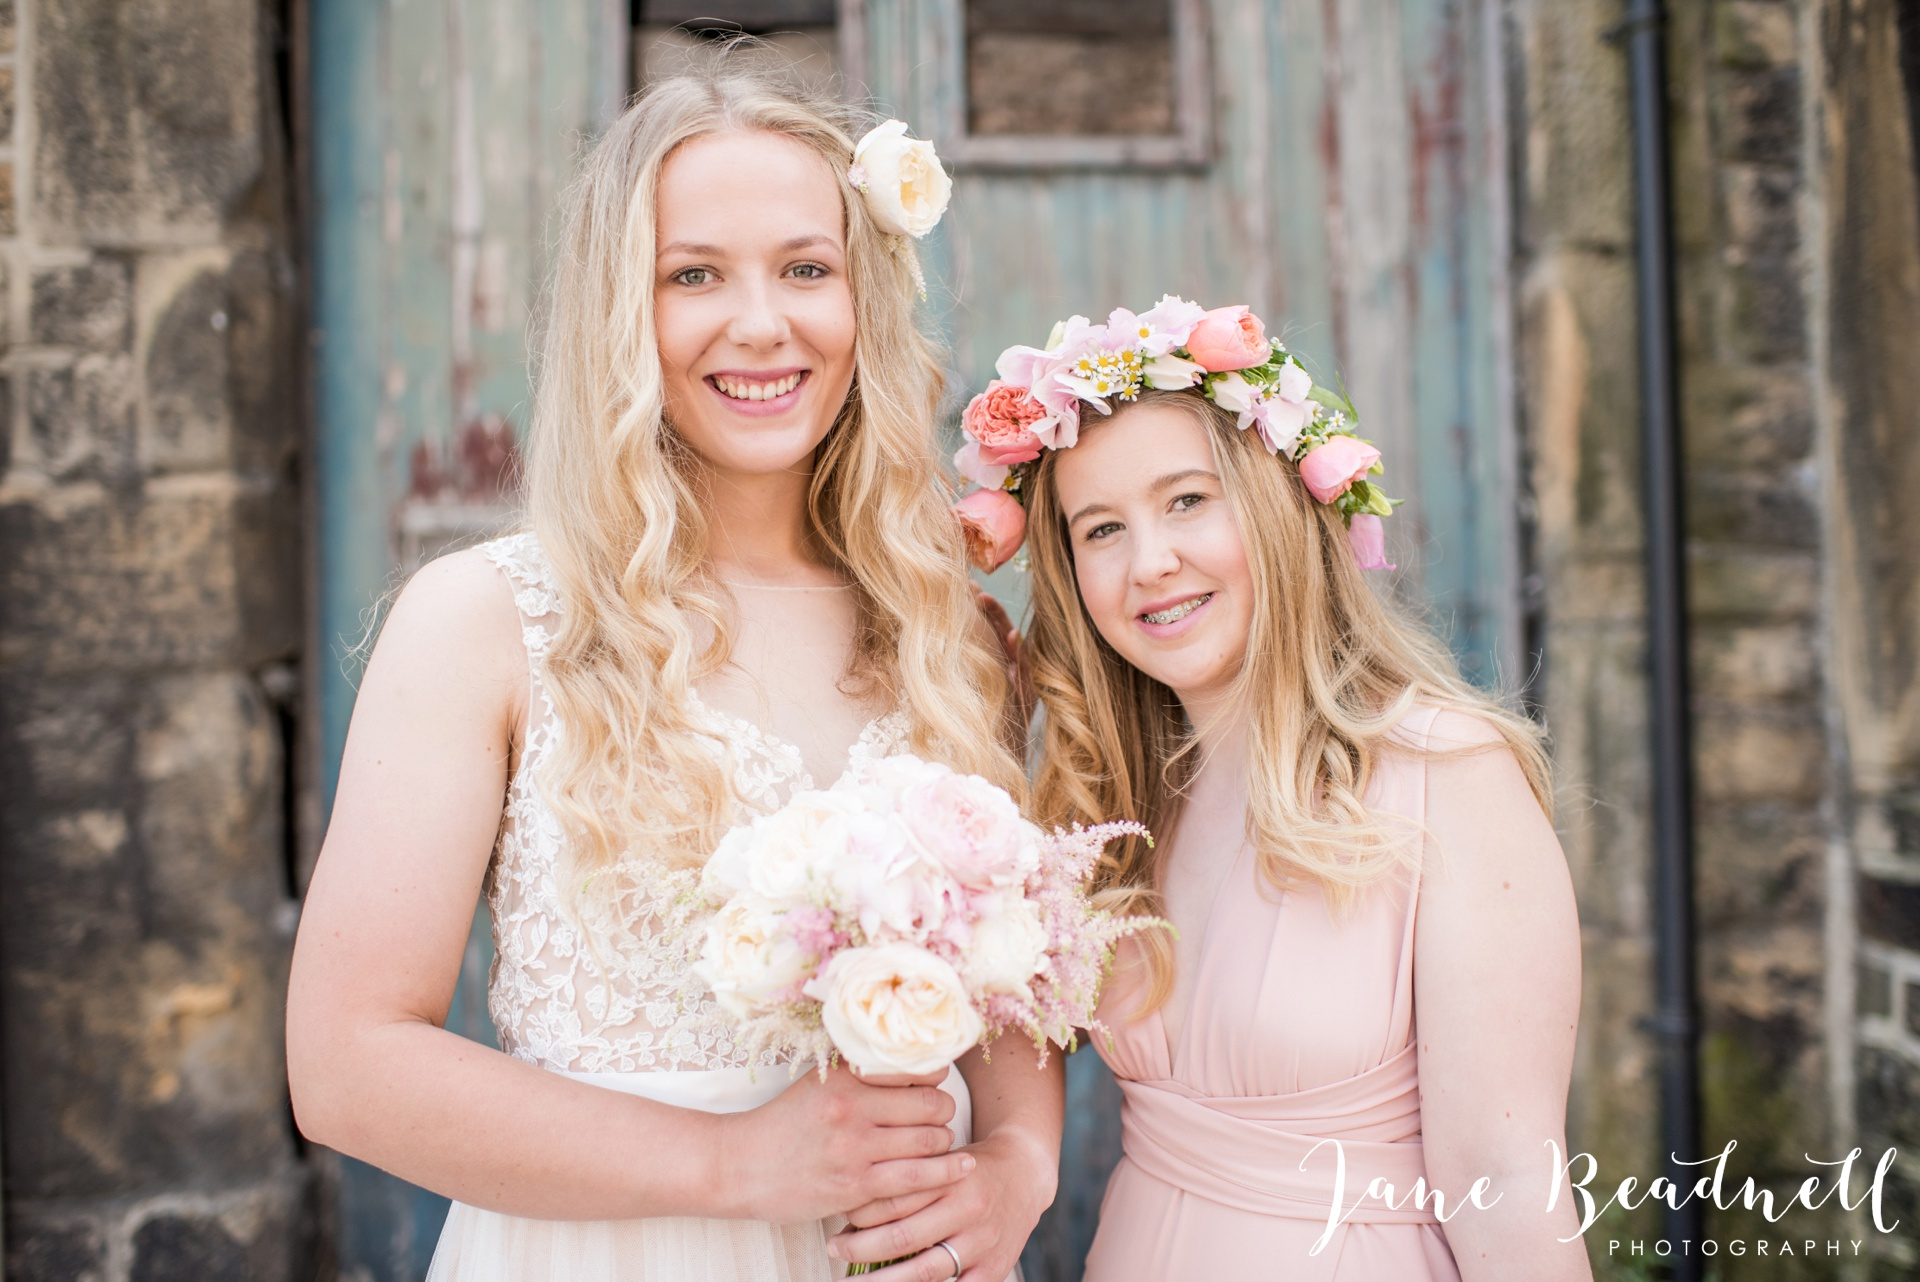 Fine art wedding photography by Jane Beadnell Photography Leafy Couture wedding flowers_0033